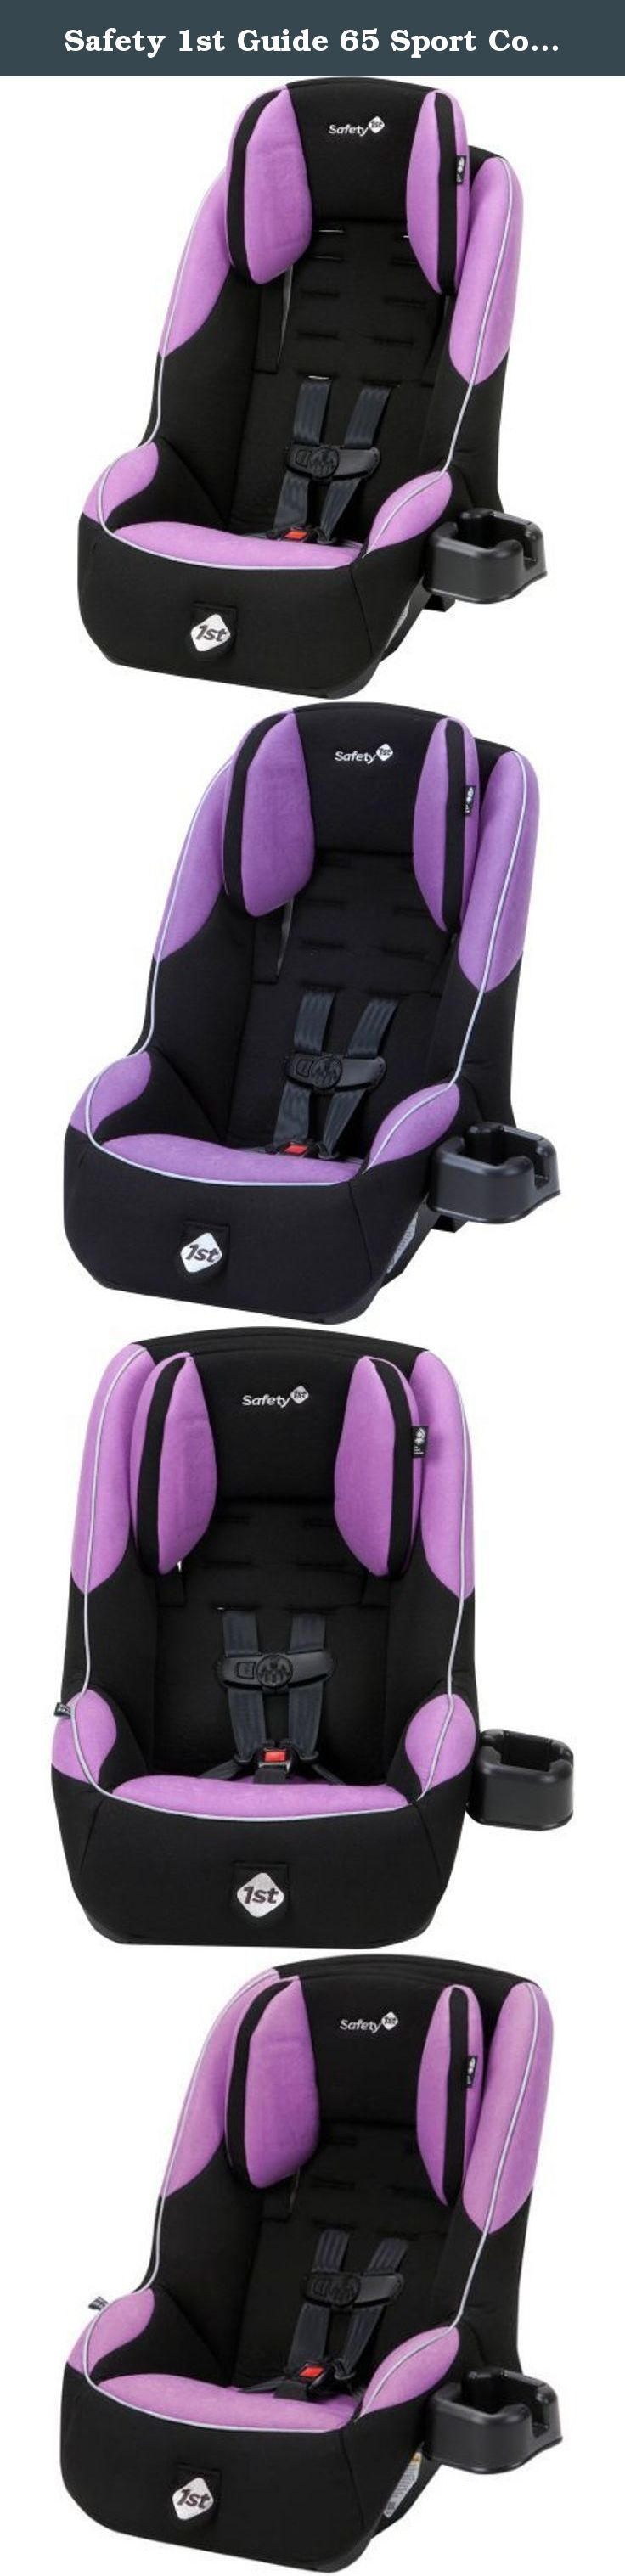 Safety 1st Guide 65 Sport Convertible Car Seat Lavender Small Problems They